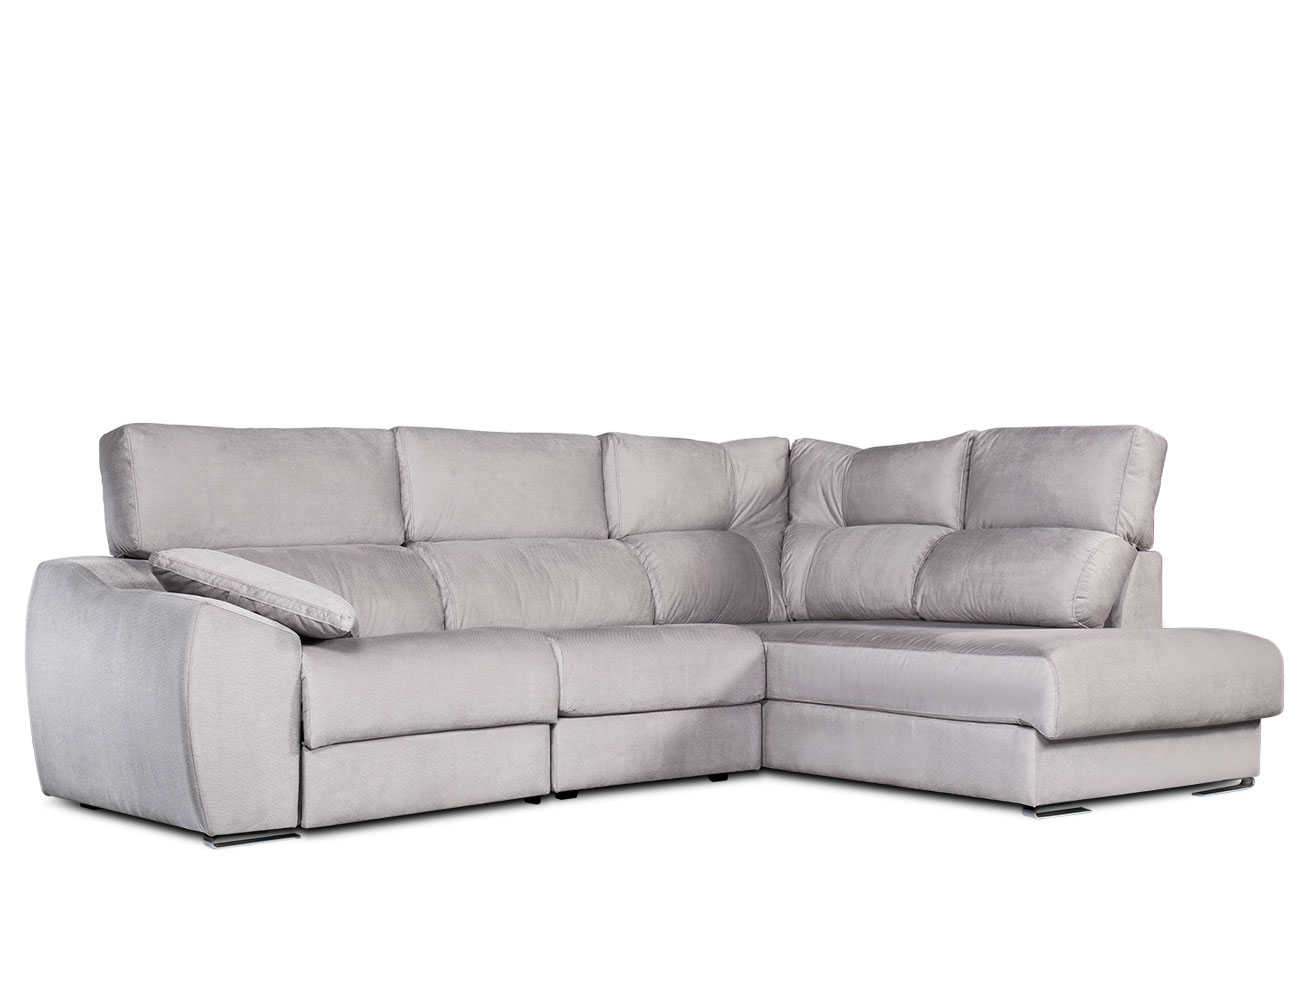 Sofa chaiselongue rincon electrico4